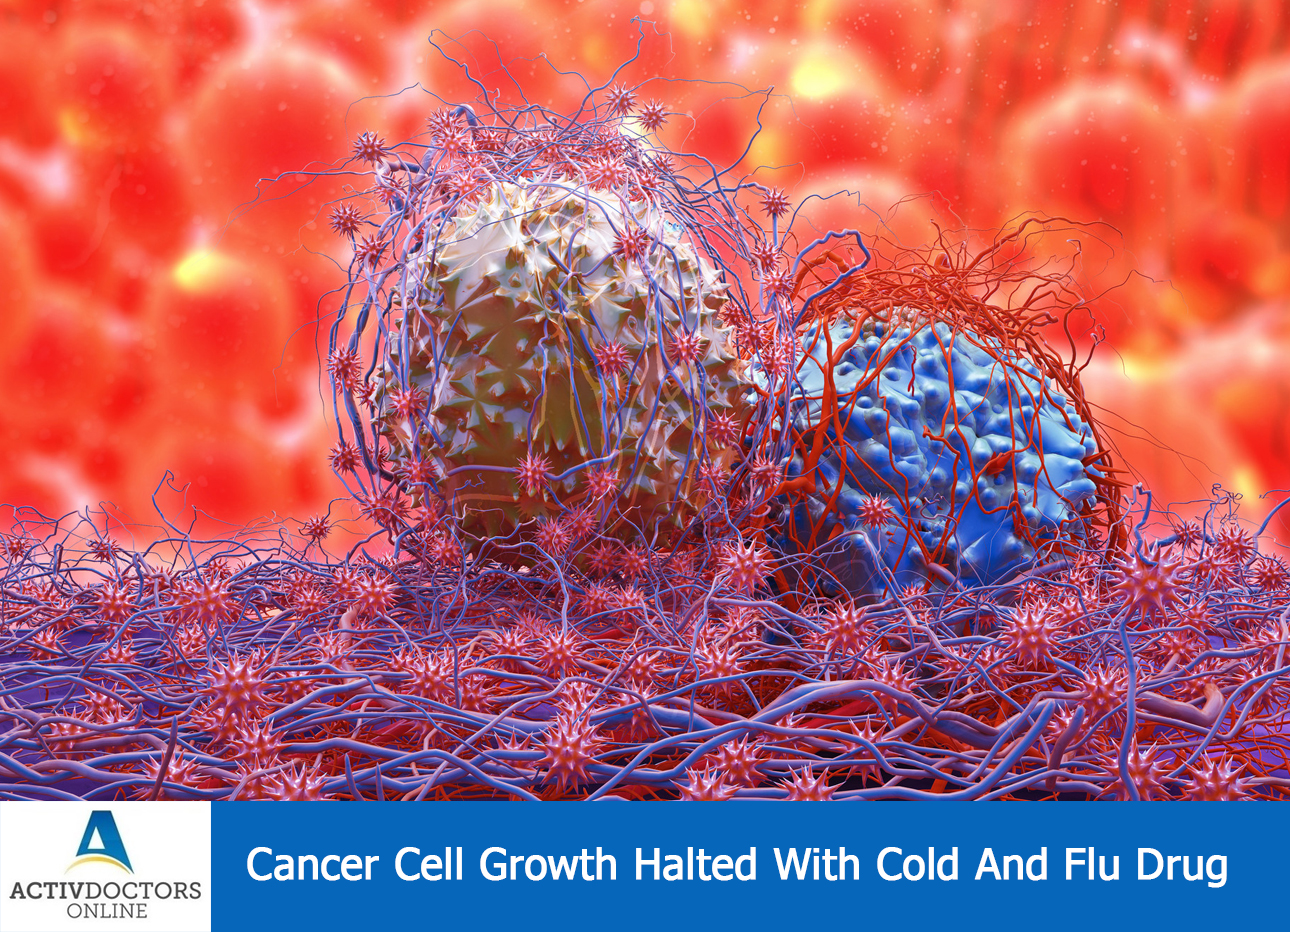 Cancer Cell Growth Halted With Cold And Flu Drug